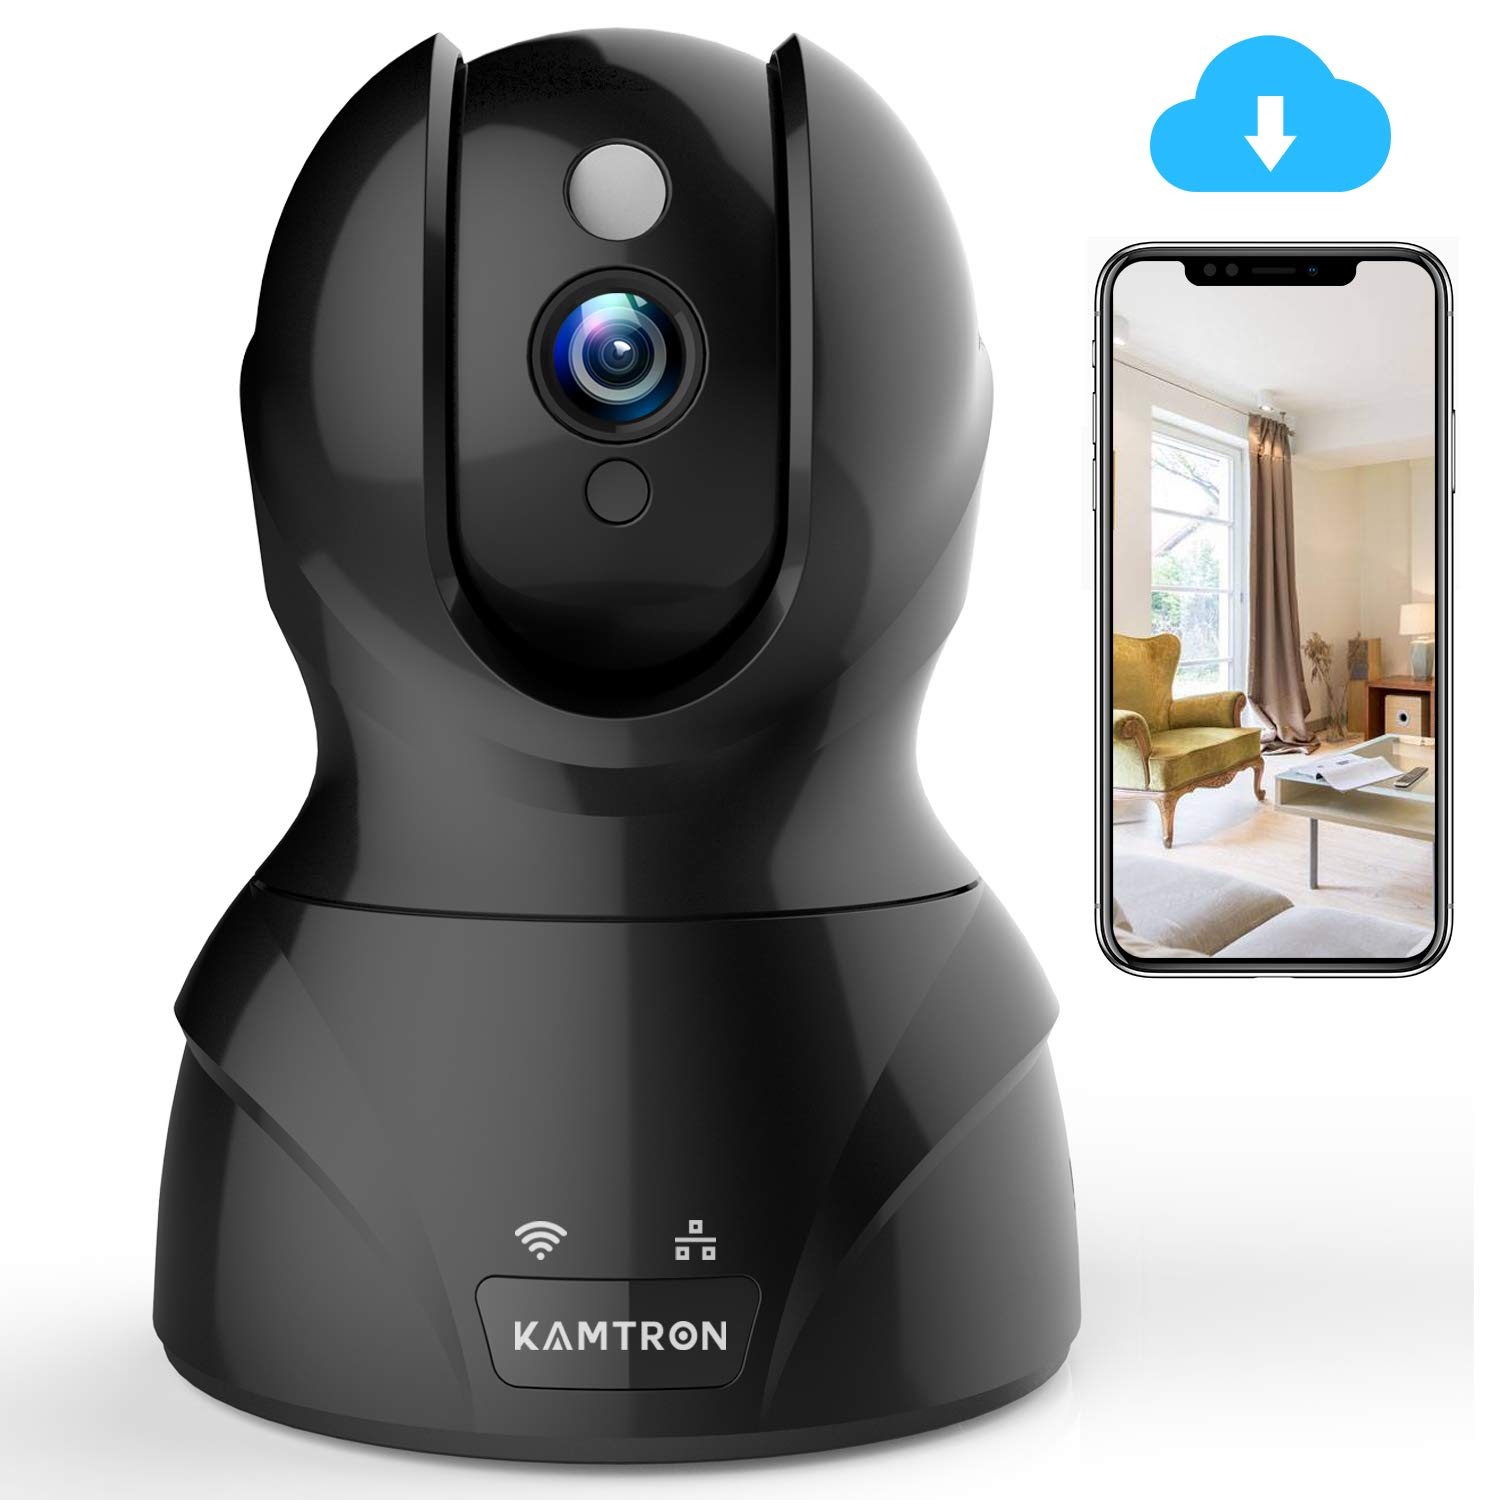 KAMTRON Wireless Camera,1080P HD WiFi Security Surveillance IP Camera Home Monitor with Motion Detection Two-Way Audio…